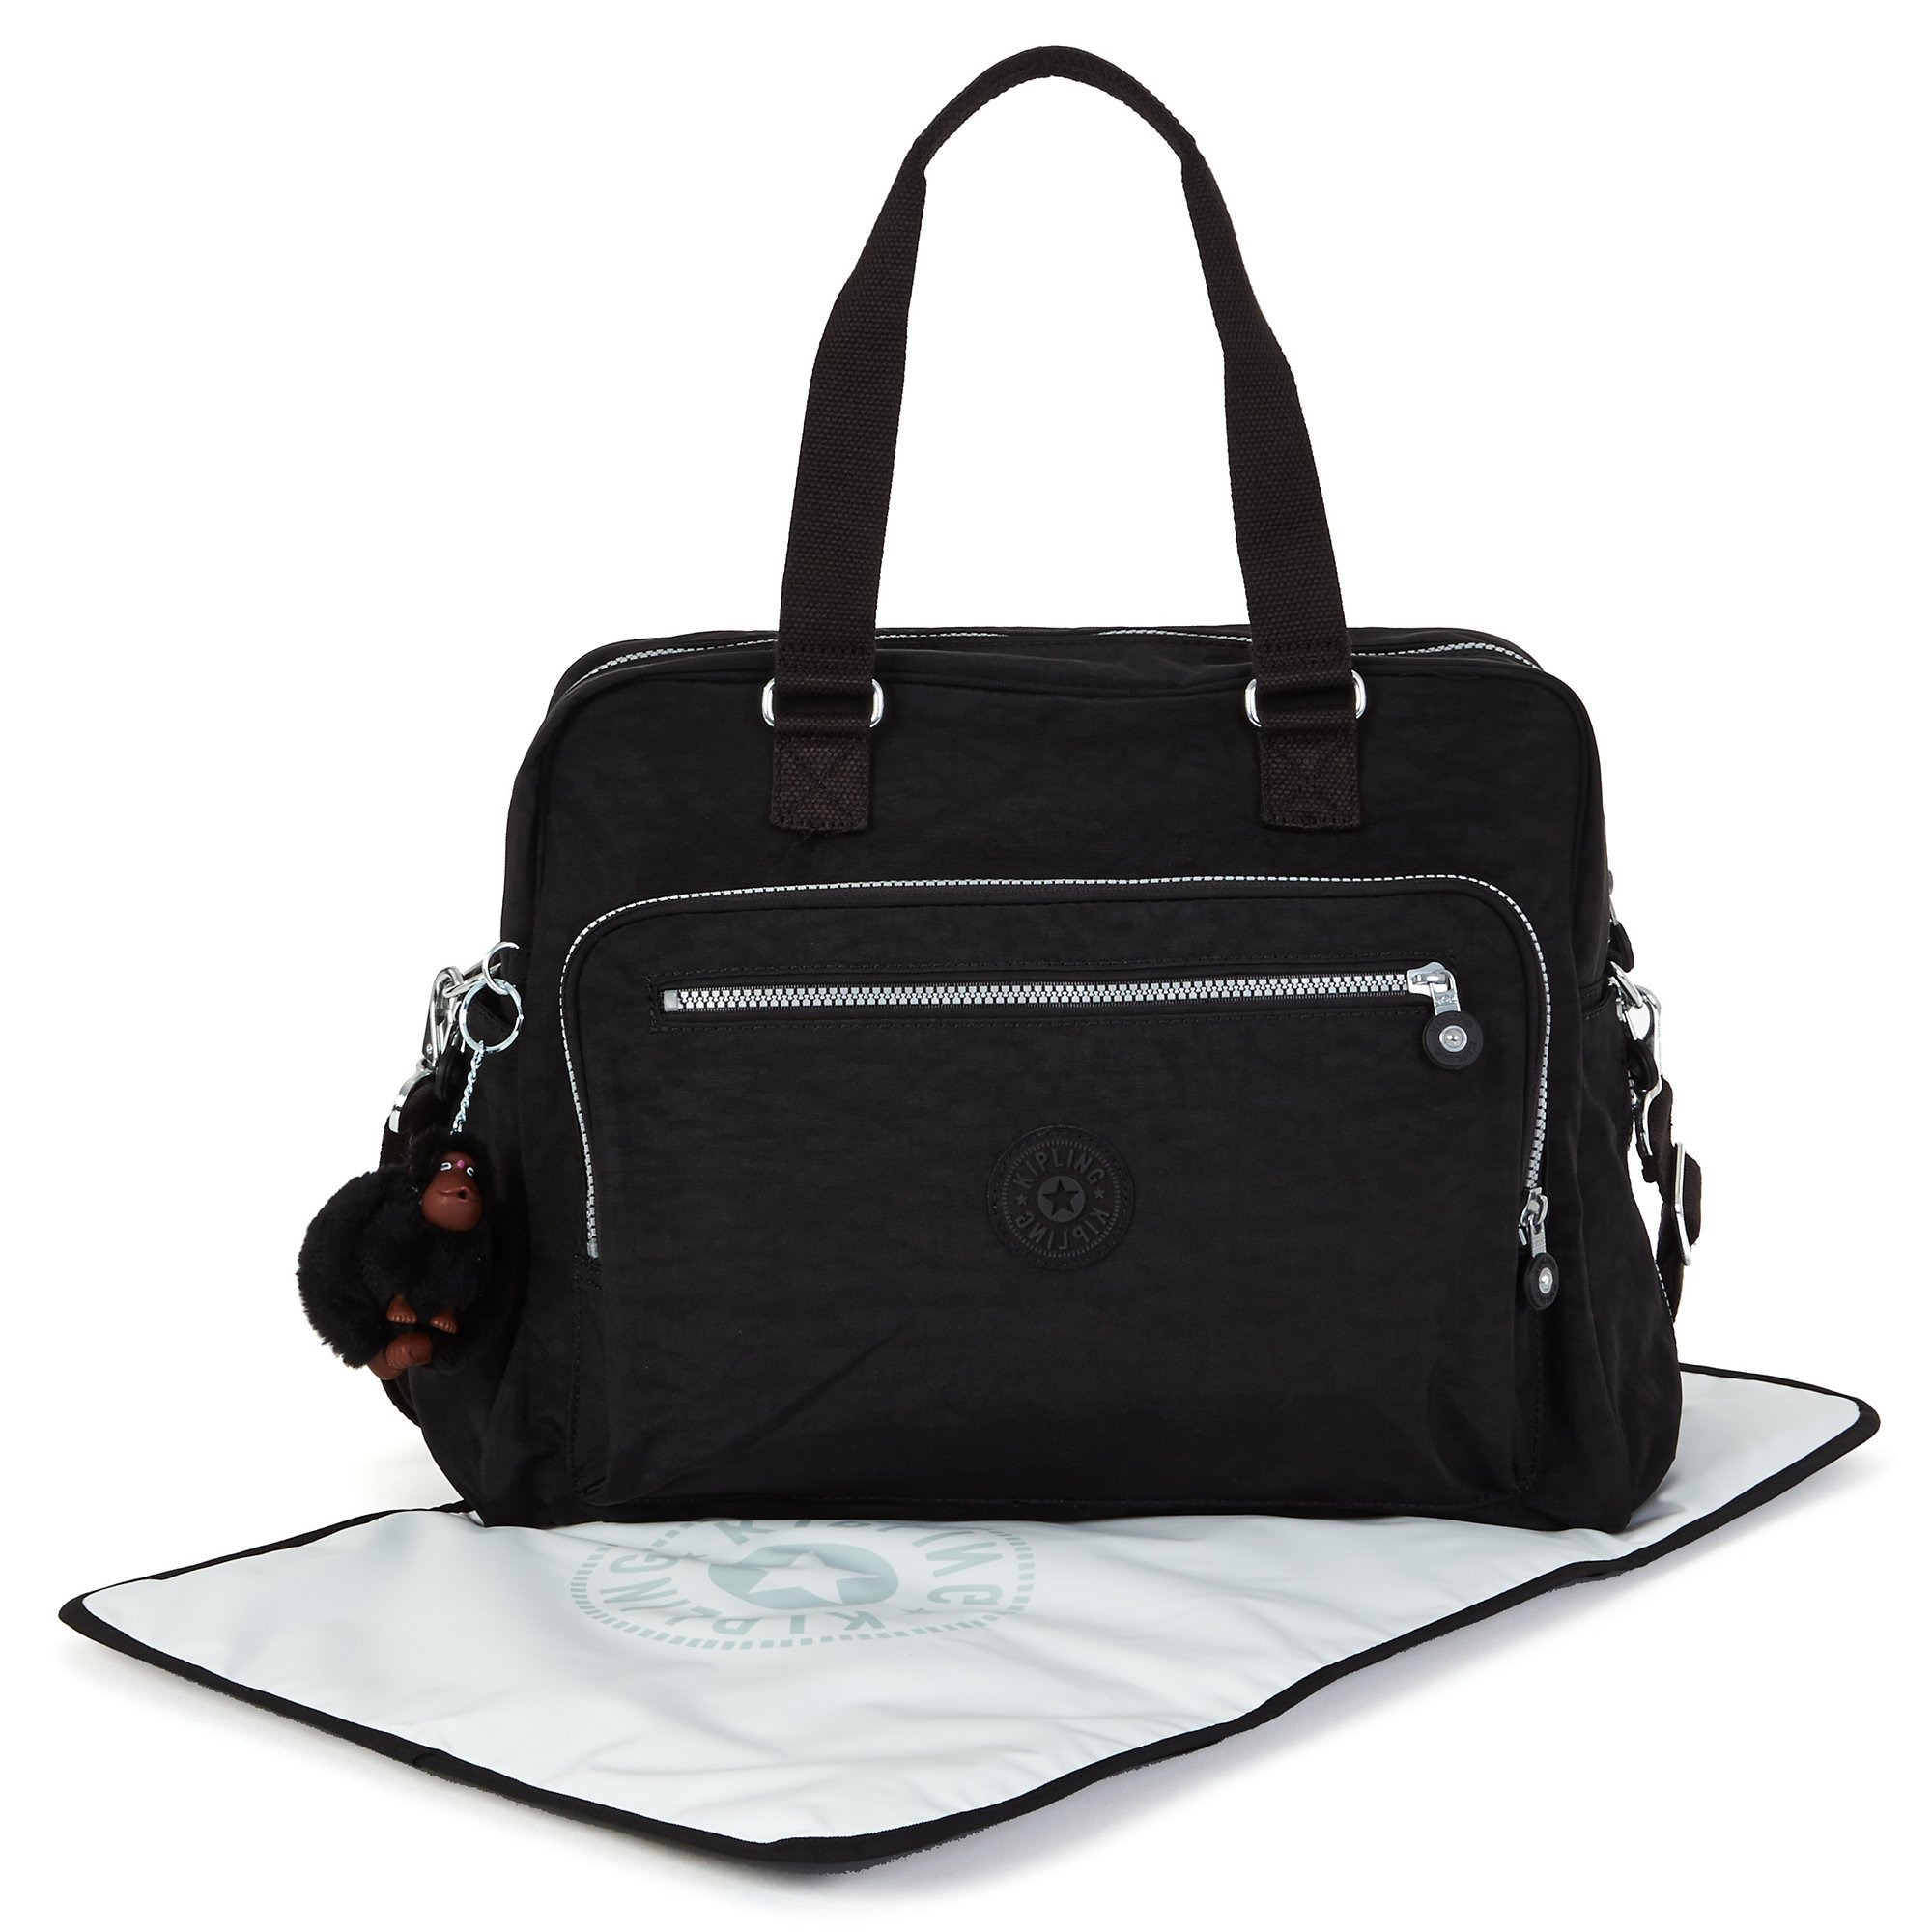 Kipling Alanna Baby Bag with multiple compartments, Black